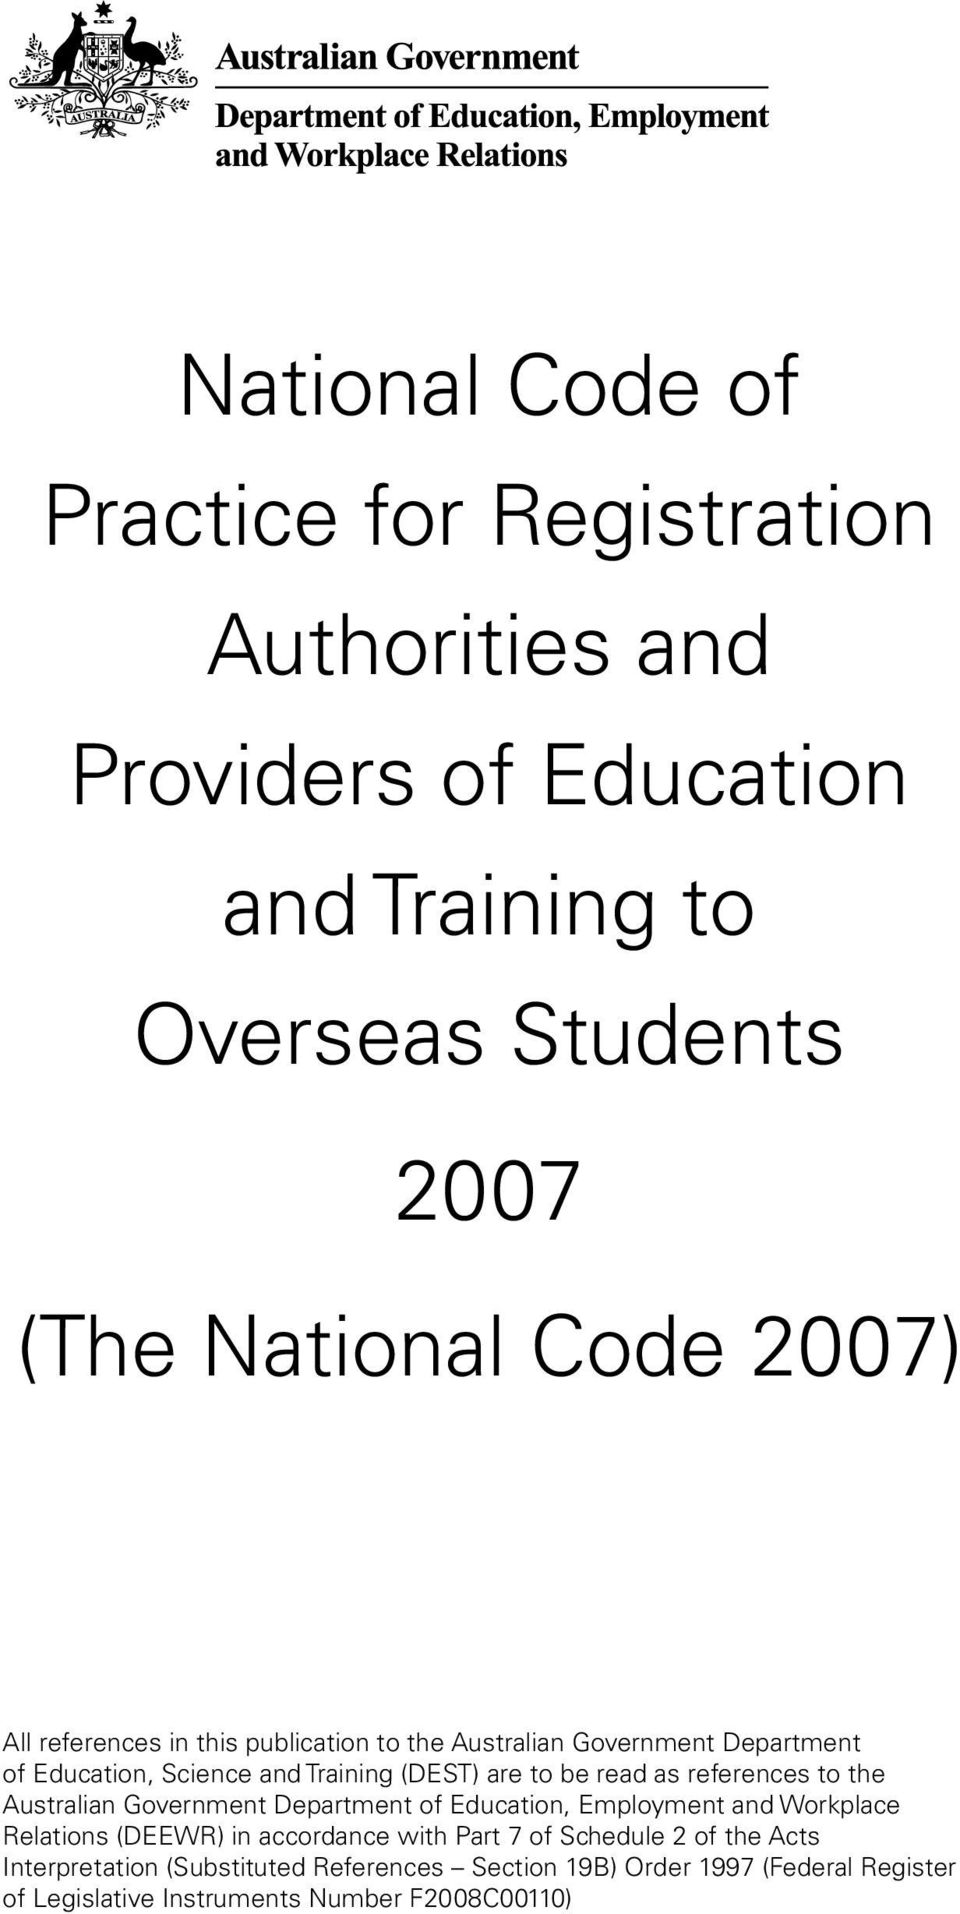 references to the Australian Government Department of Education, Employment and Workplace Relations (DEEWR) in accordance with Part 7 of